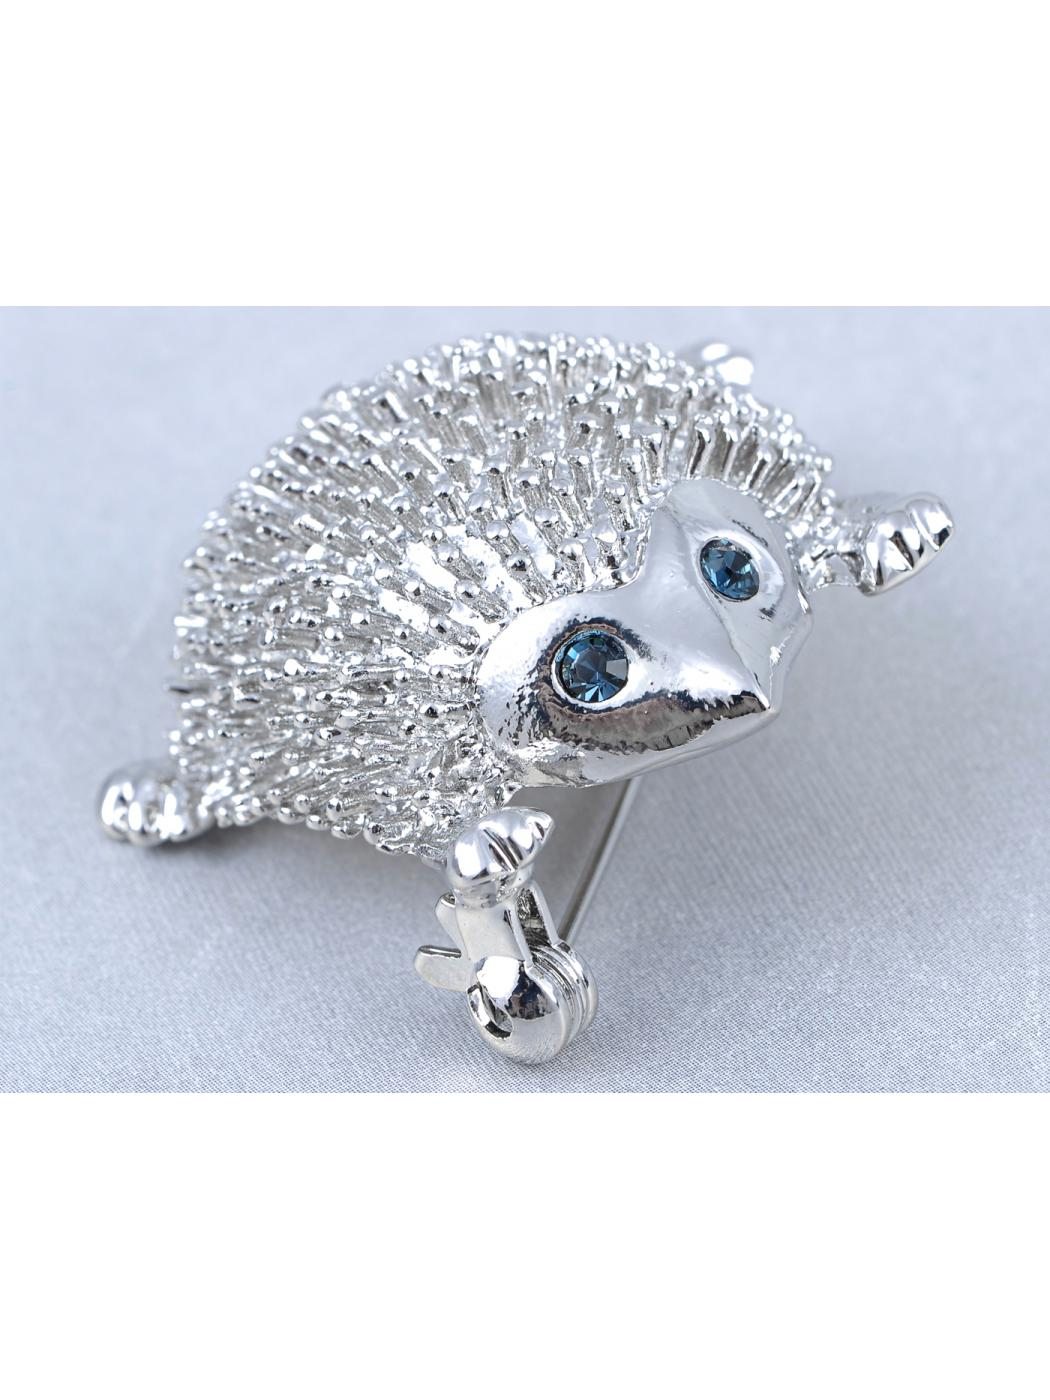 Tanzanite Sapphire Eyed Fluffy Silver Tone HedgeHog Animal Forest Pin Brooch by